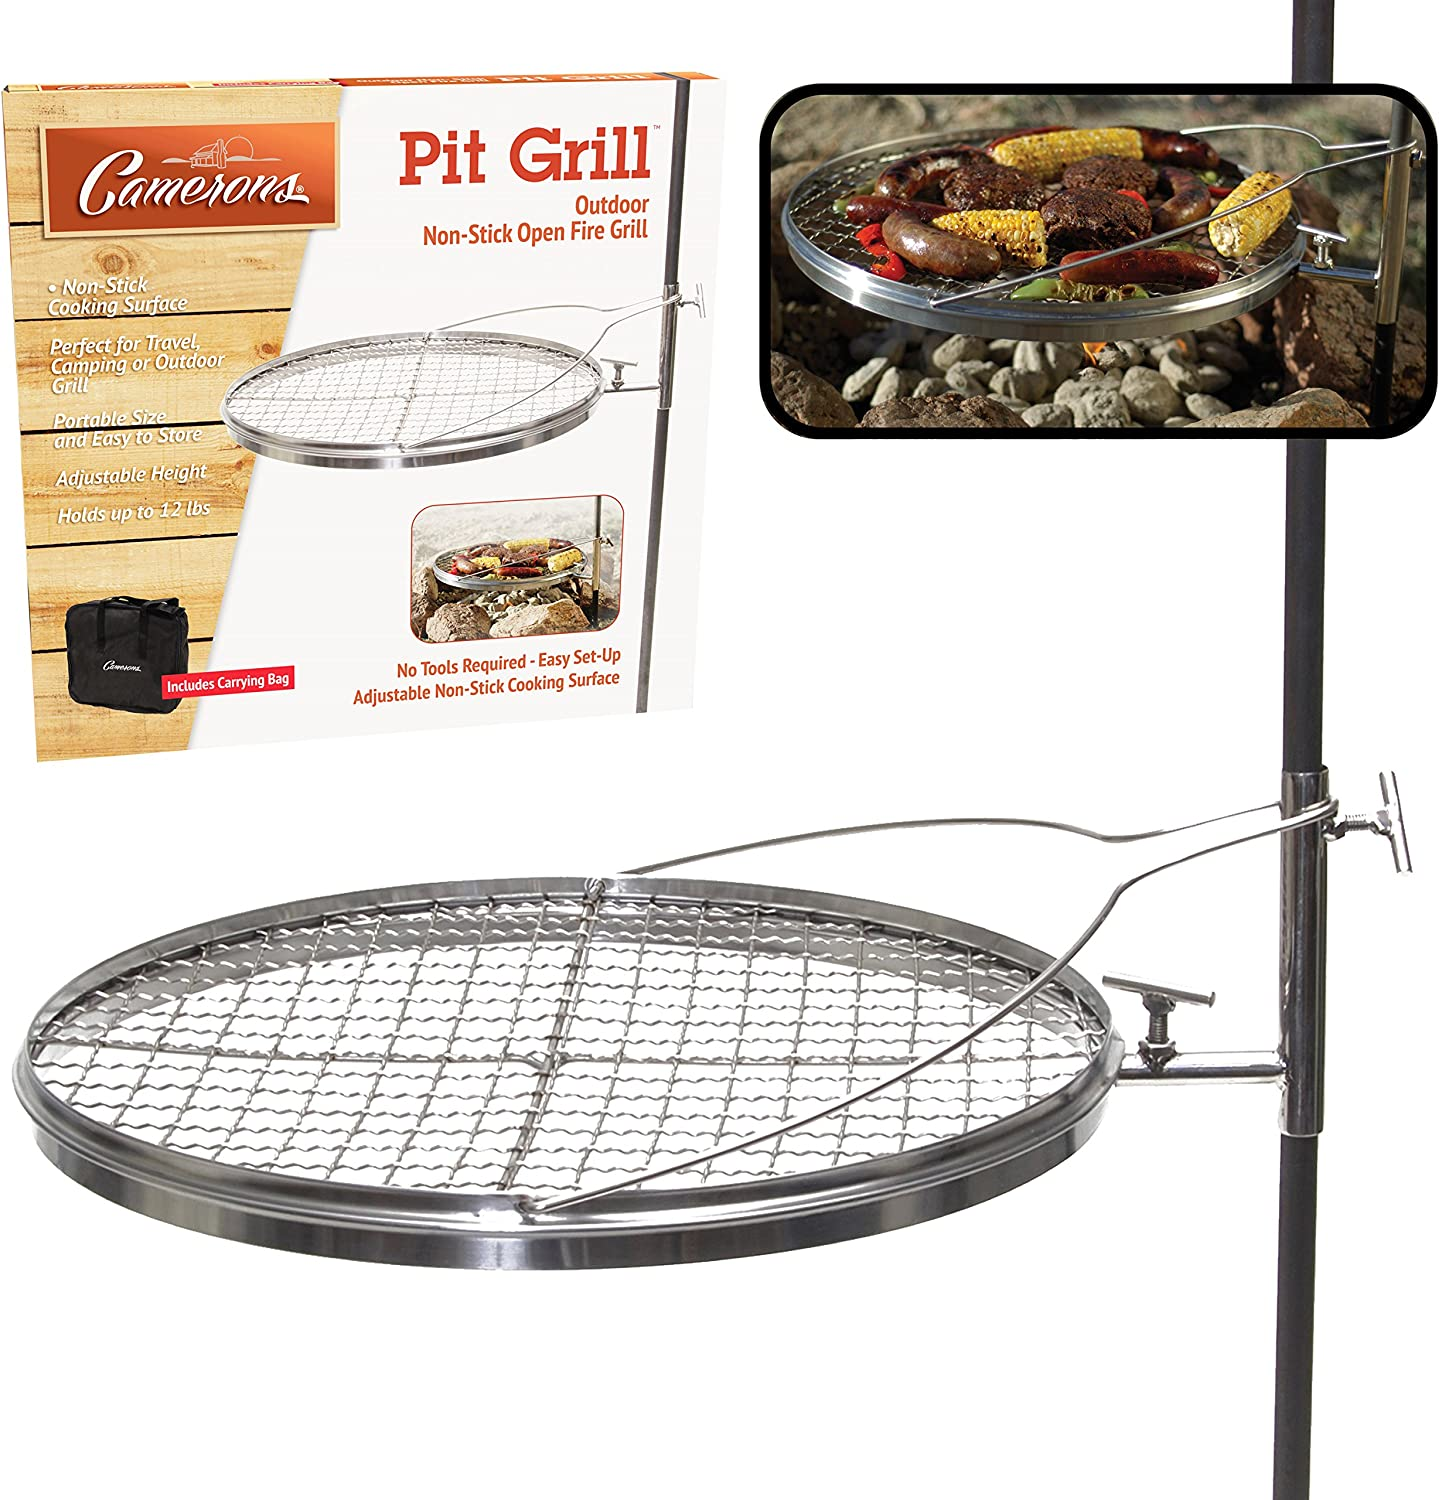 Campfire Pit Grill - Open Fire Swivel Camping Grill with XL Non-stick Grilling Surface and Carrying Bag - Great for 4th of July